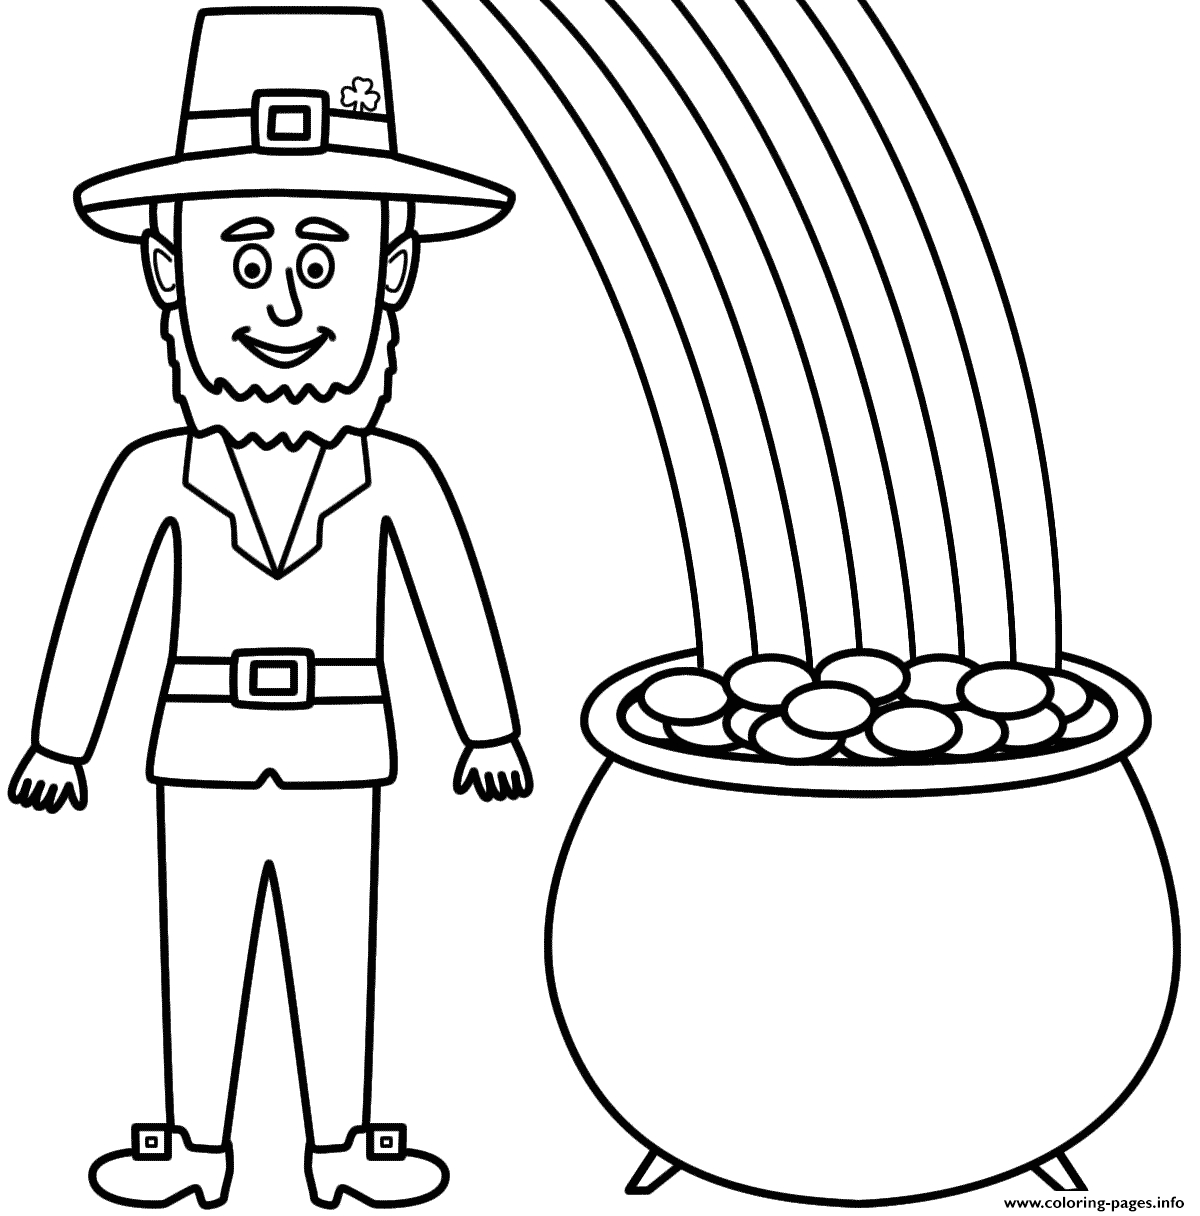 Leprechaun and Pot Of Gold Coloring Pages Leprechaun with A Pot Gold and Rainbow Coloring Pages